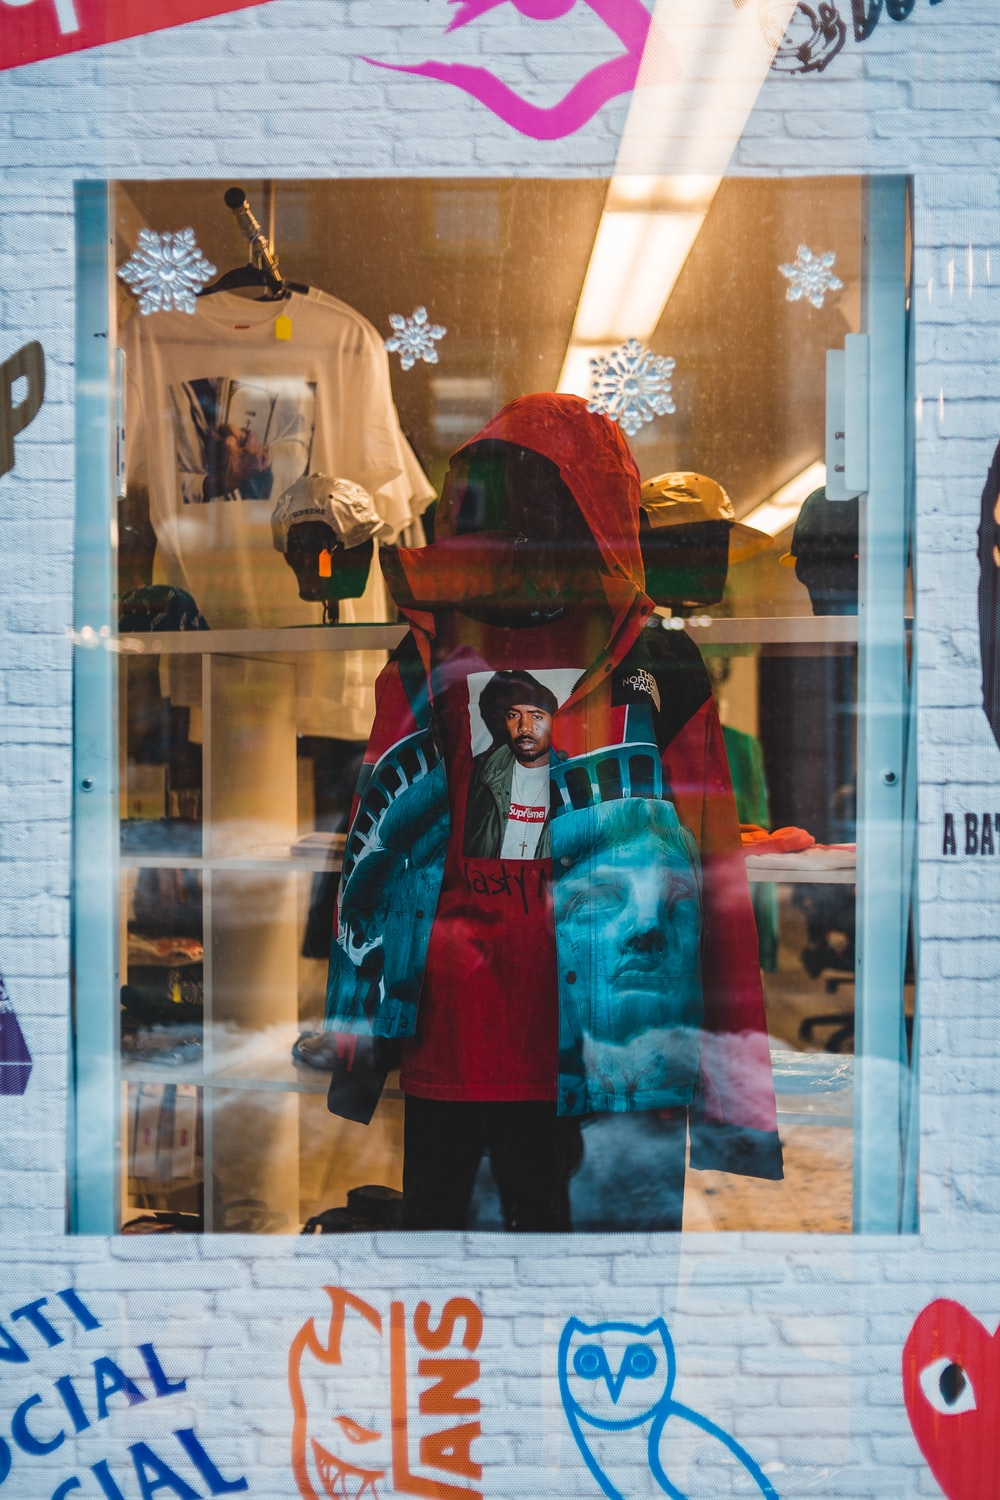 red hoodie displayed inside shop by the window